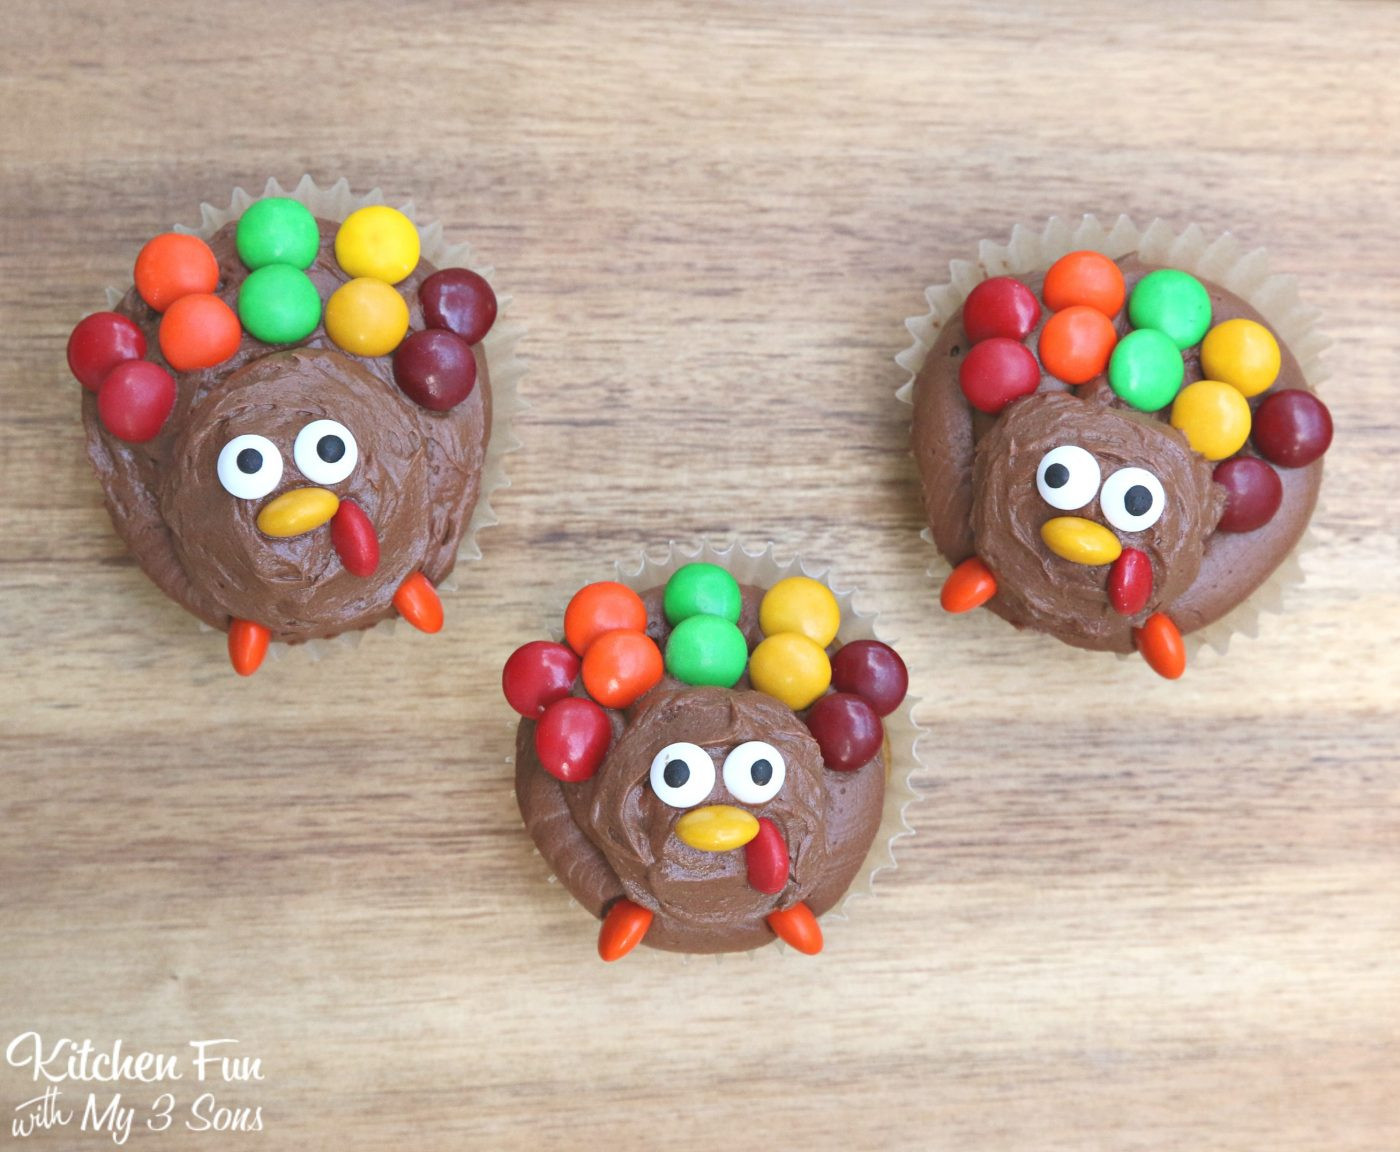 Easy Thanksgiving Turkey  Turkey Cupcakes for Thanksgiving Kitchen Fun With My 3 Sons